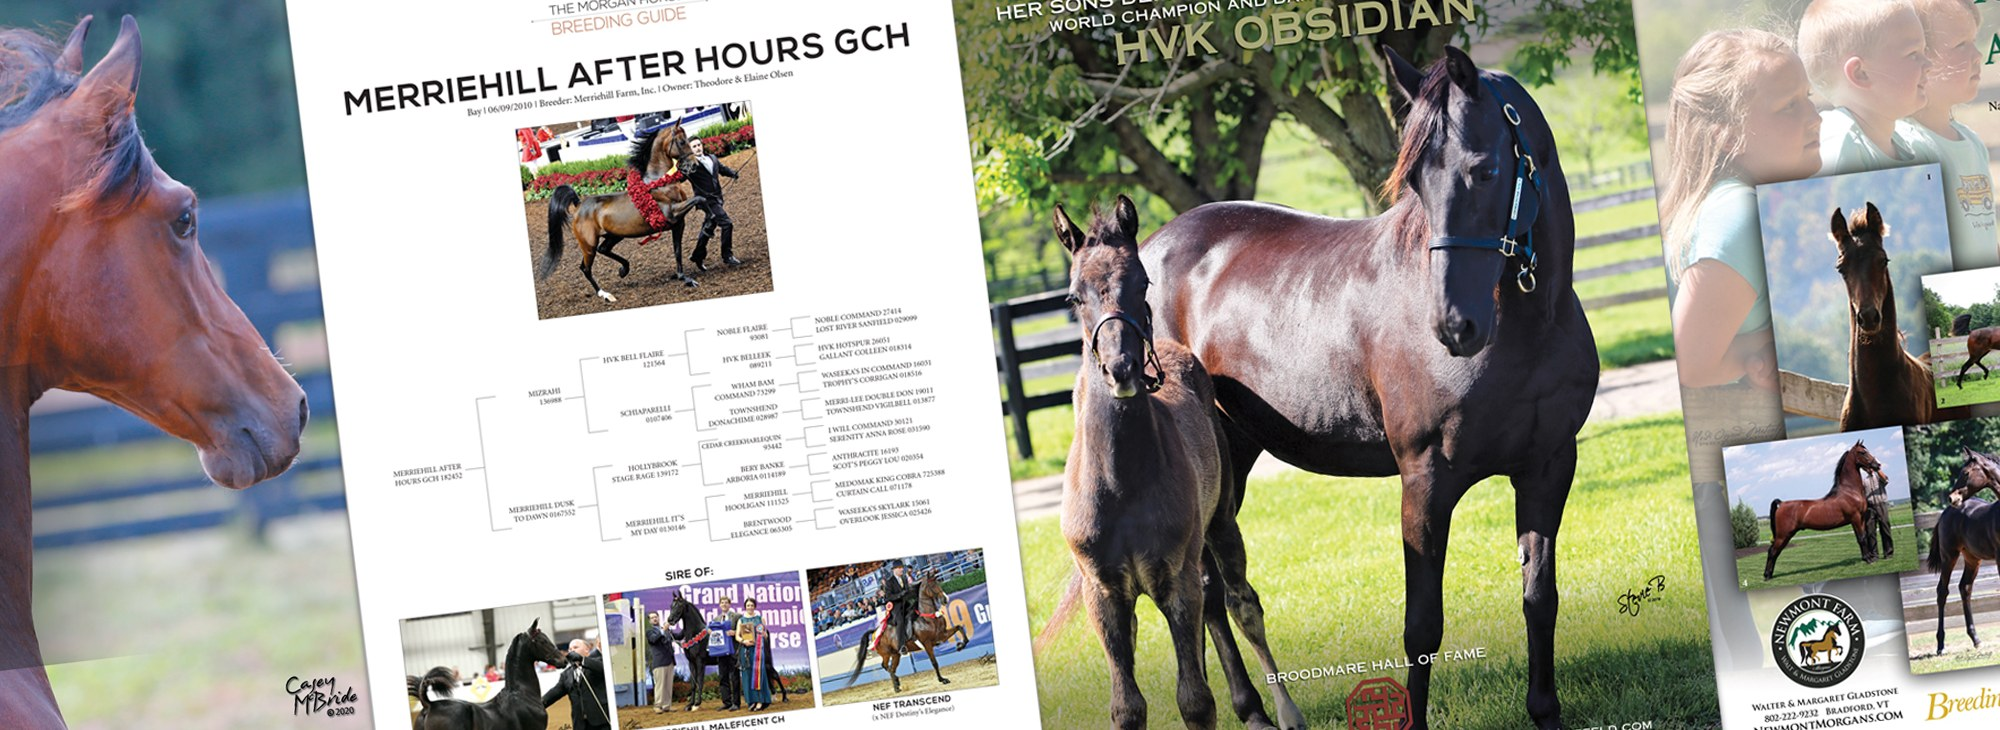 Advertising Sample from The Morgan Horse Magazine